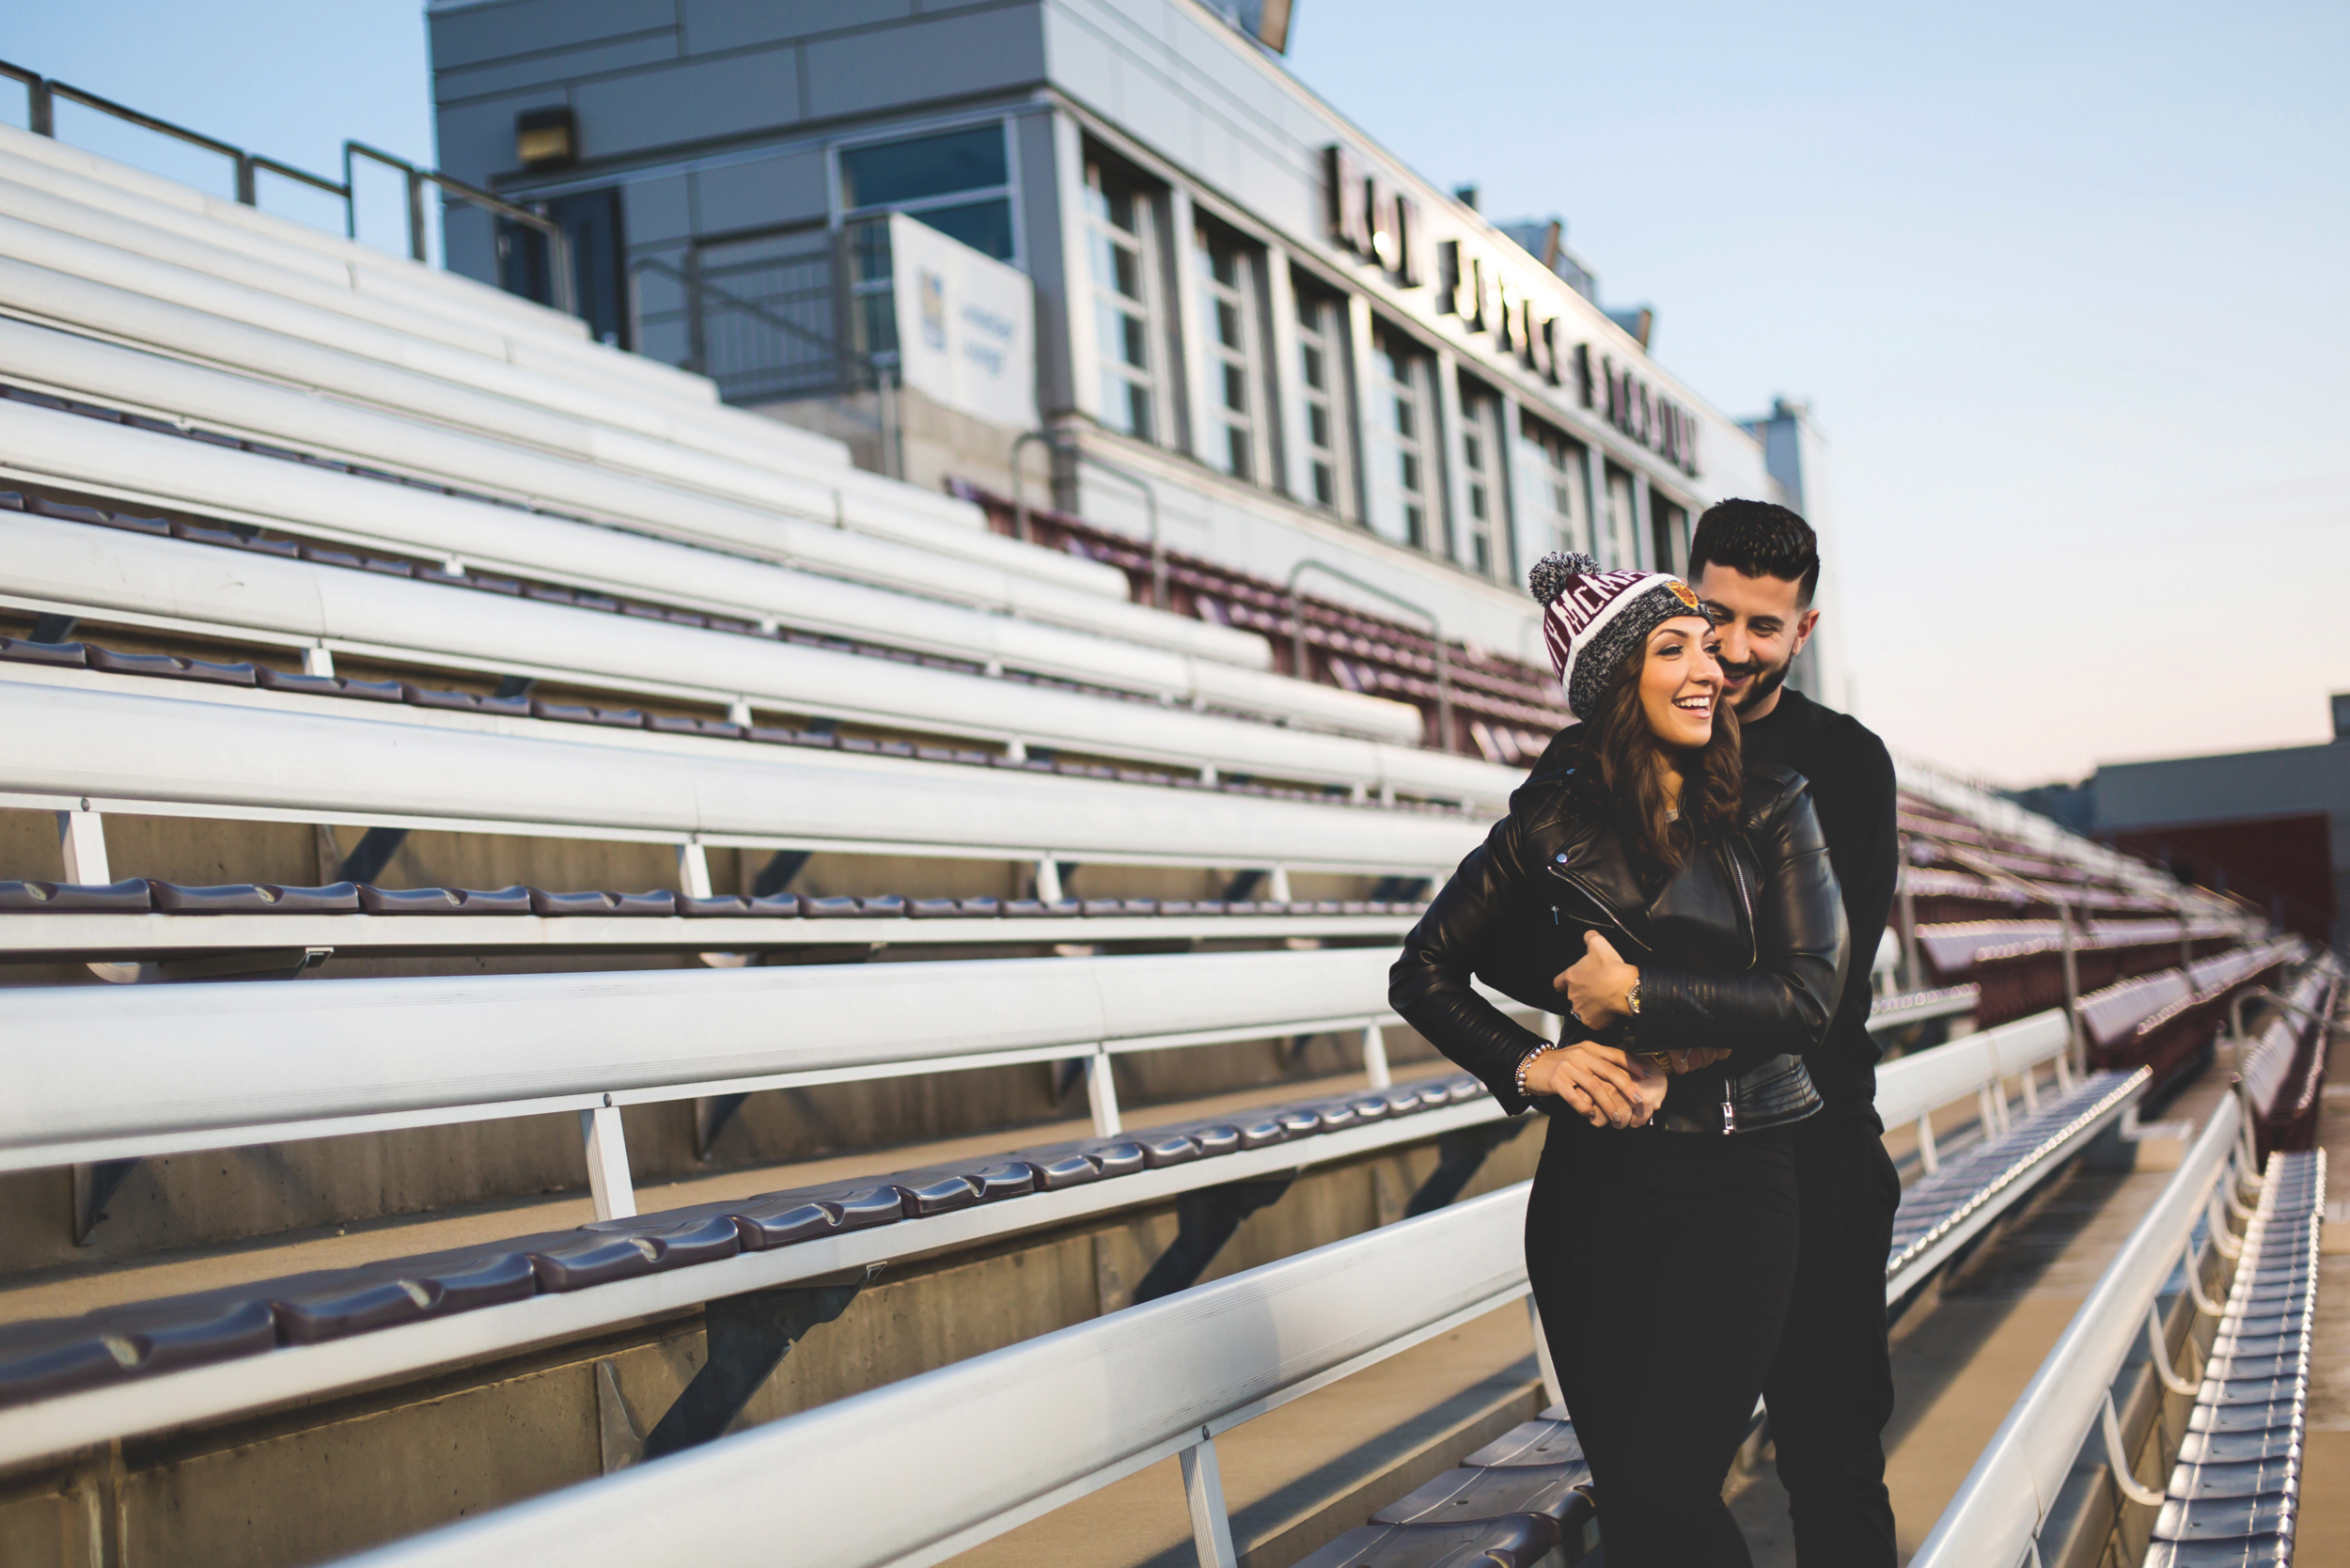 Engagement-Photography-McMaster-University-Campus-Hamilton-Burlington-Oakville-Niagara-Toronto-Wedding-Photographer-Moments-by-Lauren-Photo-Image-28.png